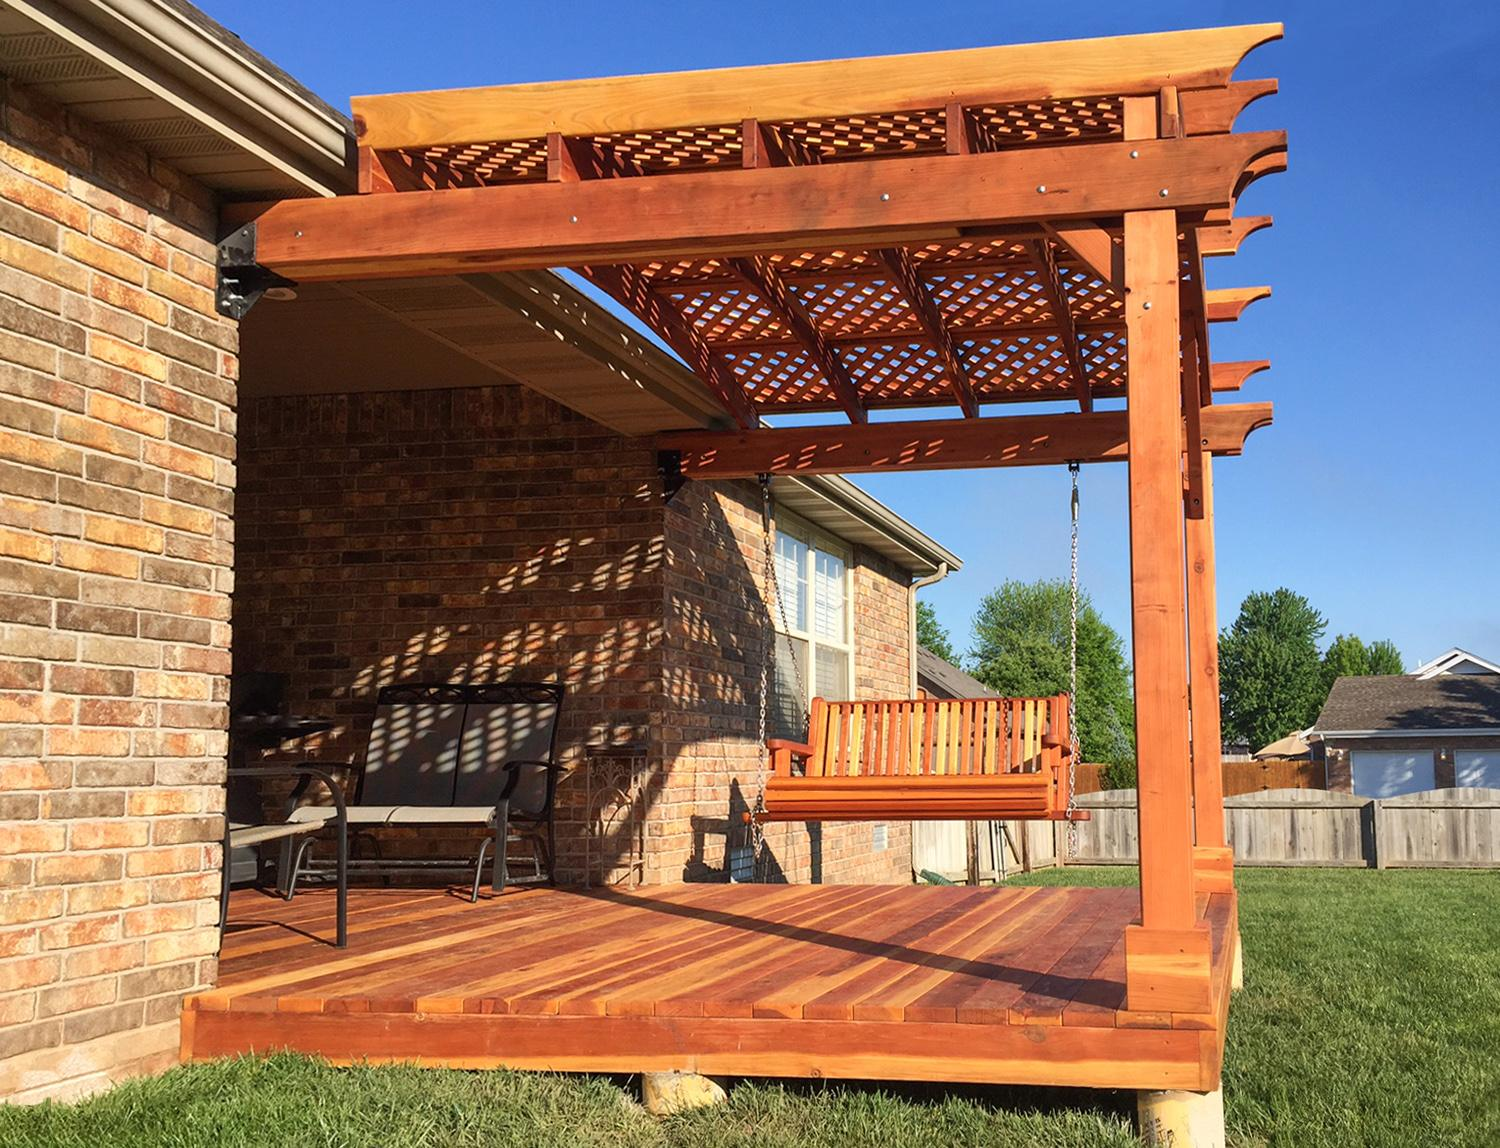 ... a pergola of your own but are stuck on deciding if you want to purchase  a prefab pergola kit or build your own. Here are some pros and cons of each. - Pros And Cons Of A Prefab Pergola Kit Vs. Building Your Own